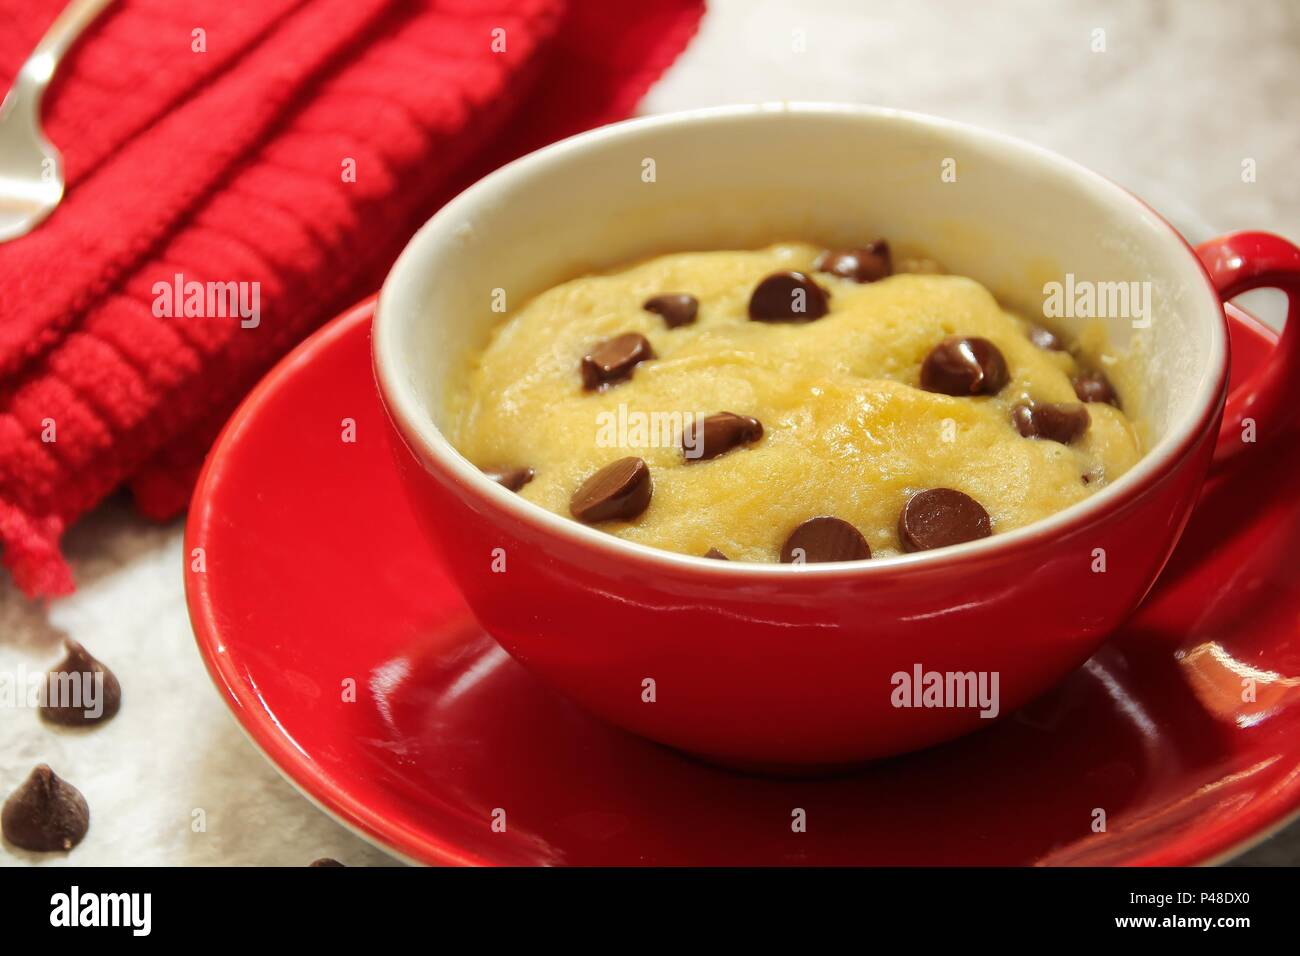 Microwave Chocolate Chip Mug Cookie In A Red Cup Valentines Day Dessert Selective Focus Stock Photo Alamy